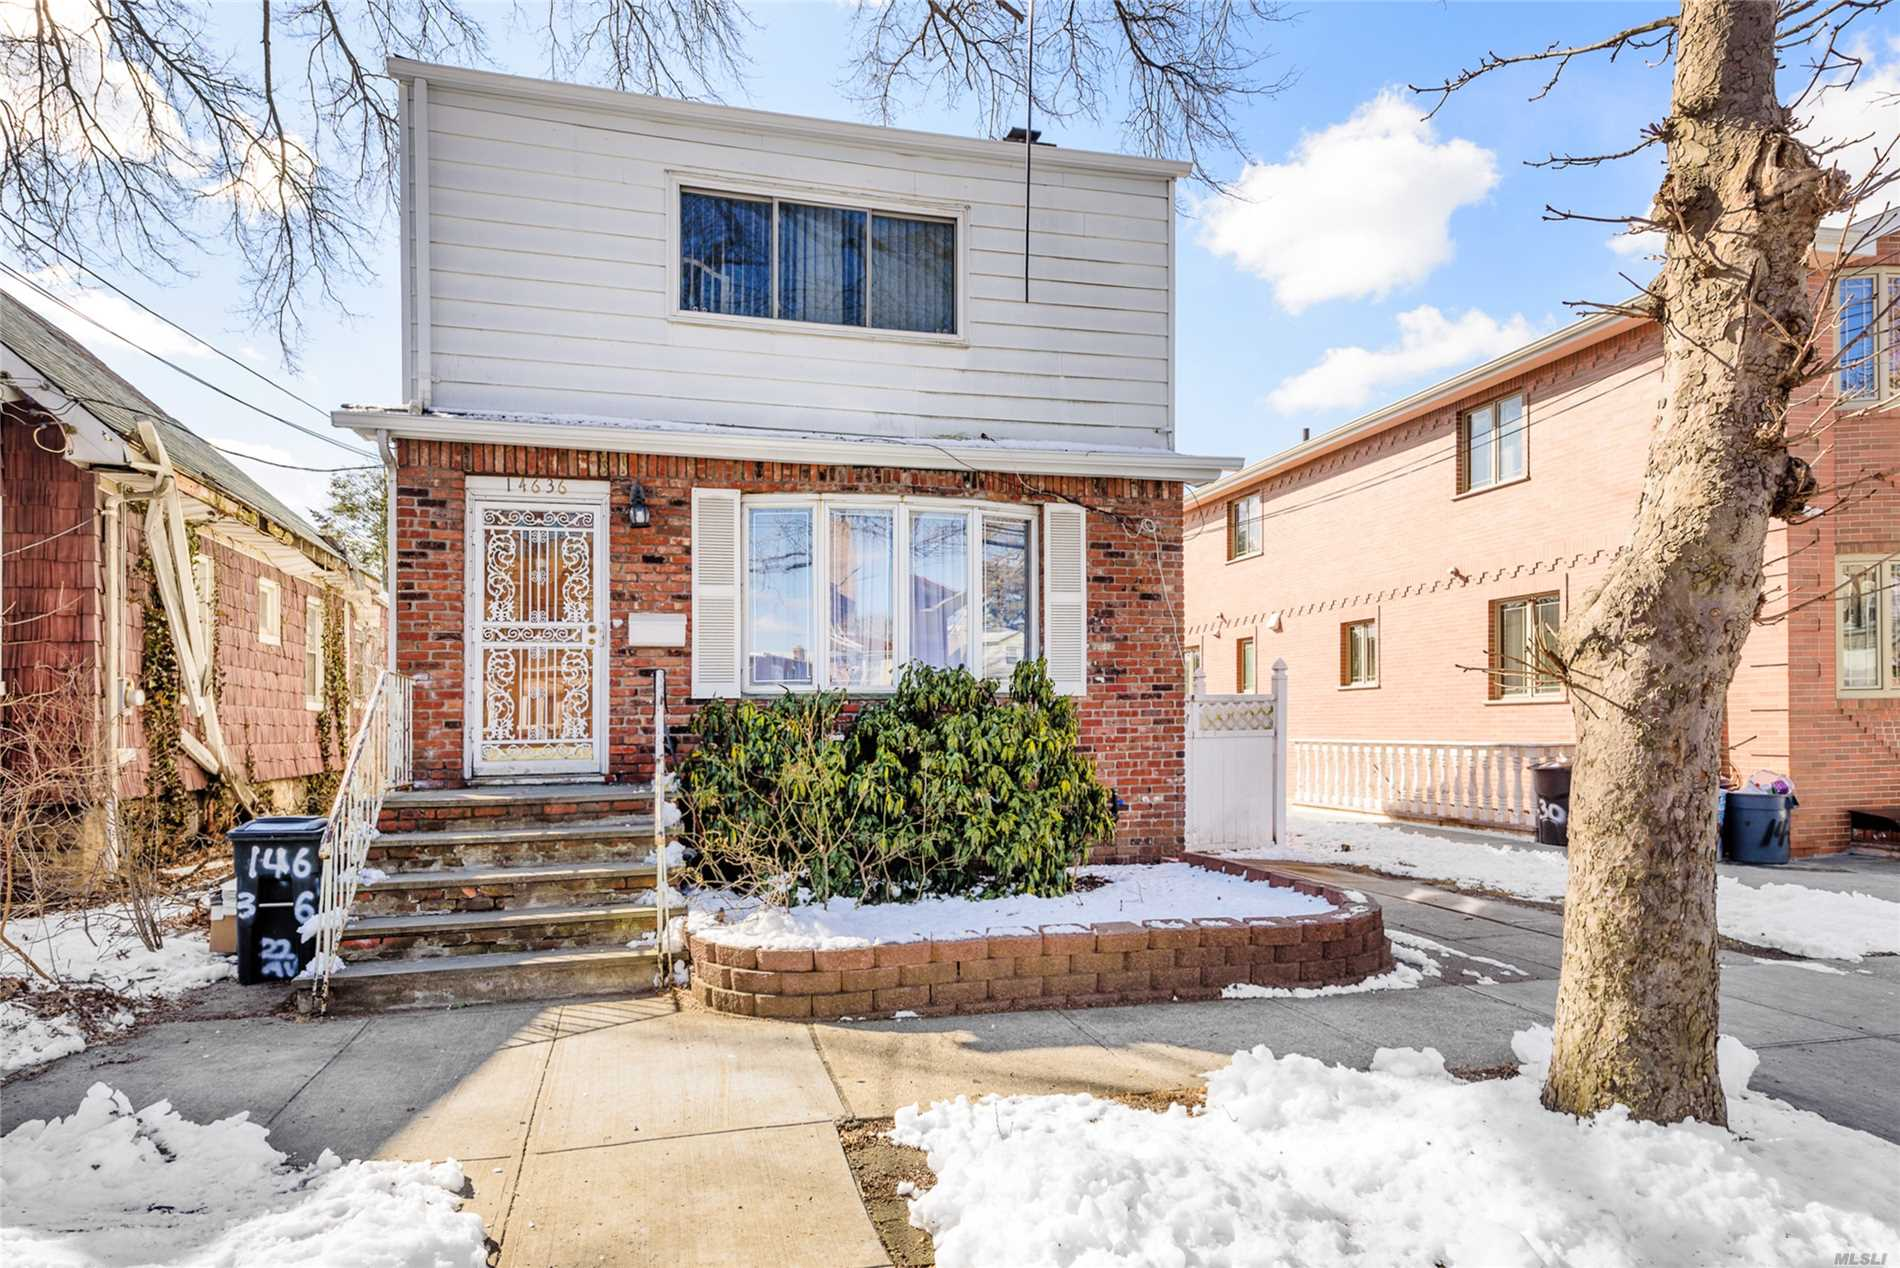 Very well maintained R3-1 zoned 4BR/1.5BTH DET 1700 sq ft sun-drenched colonial located on quiet tree lined street. Conveniently located near whitestone bridge and higheway this home features gleaming hardwood floors, rear deck, large basement with separate outside entrance, NEW roof and windows done 2018.